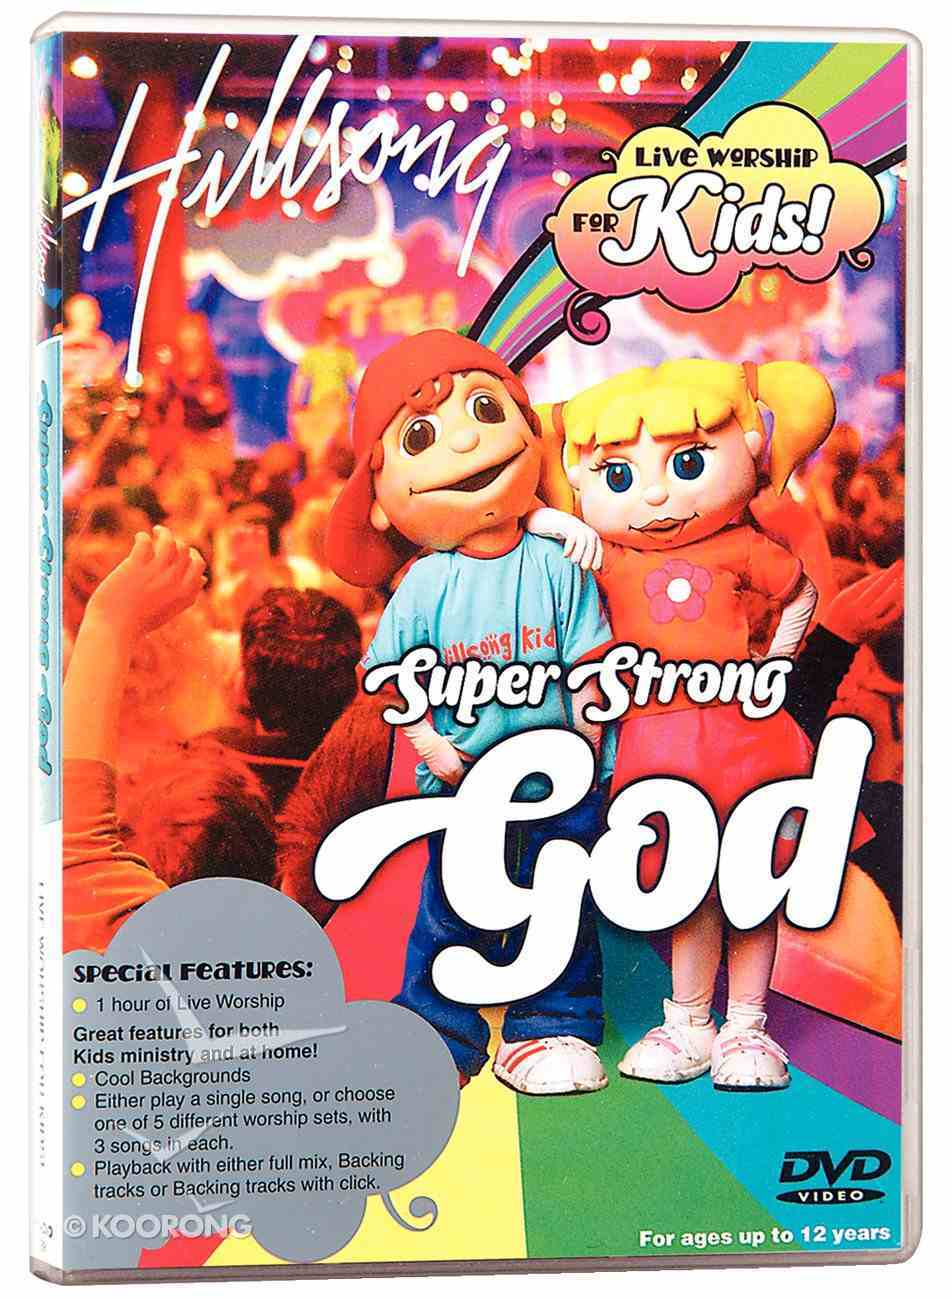 Hillsong Kids 2005: Super Strong God DVD